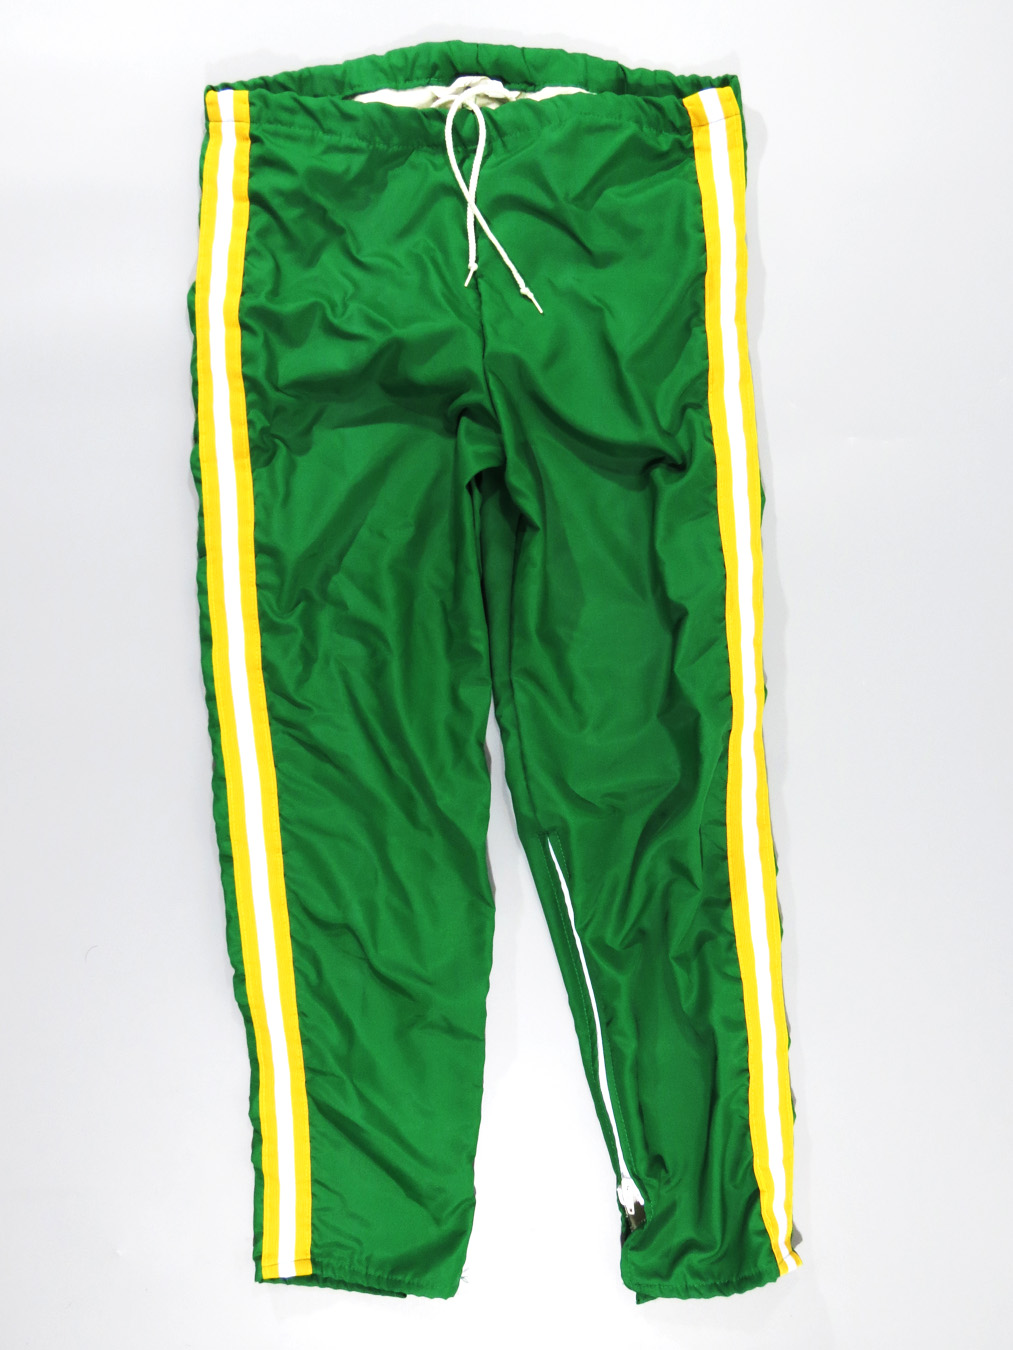 80s Green Yellow Striped Track Pants 5 Star Vintage